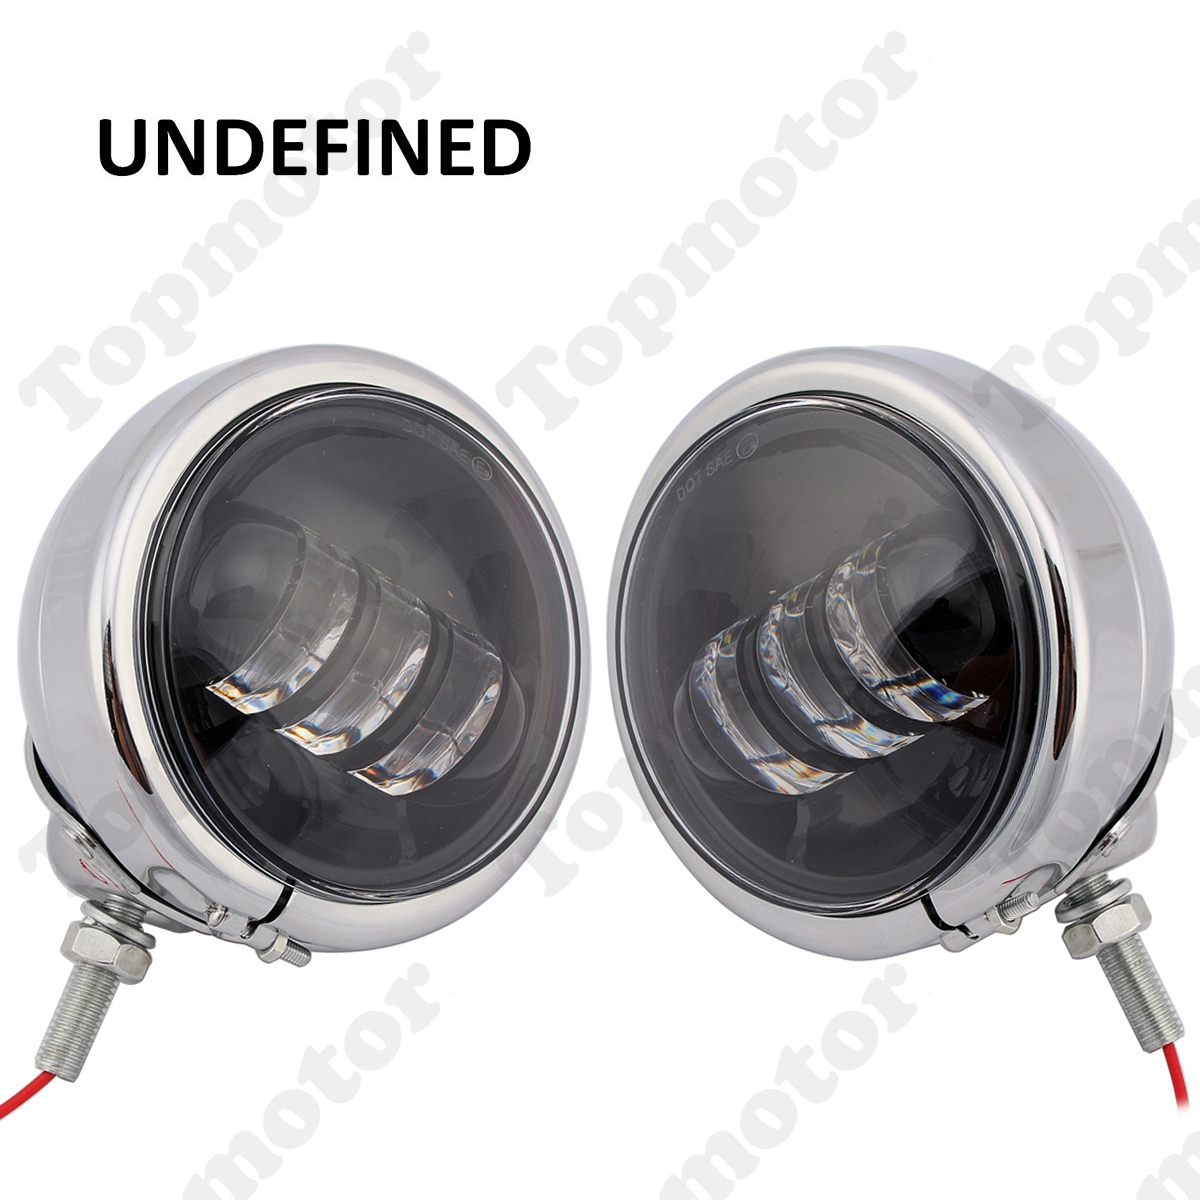 UNDEFINED 4 12 Chrome Motorbike Accessories LED Auxiliary Fog Passing Light Lamp For Harley Touring FLHR FLHX FLHXS FLHXXX